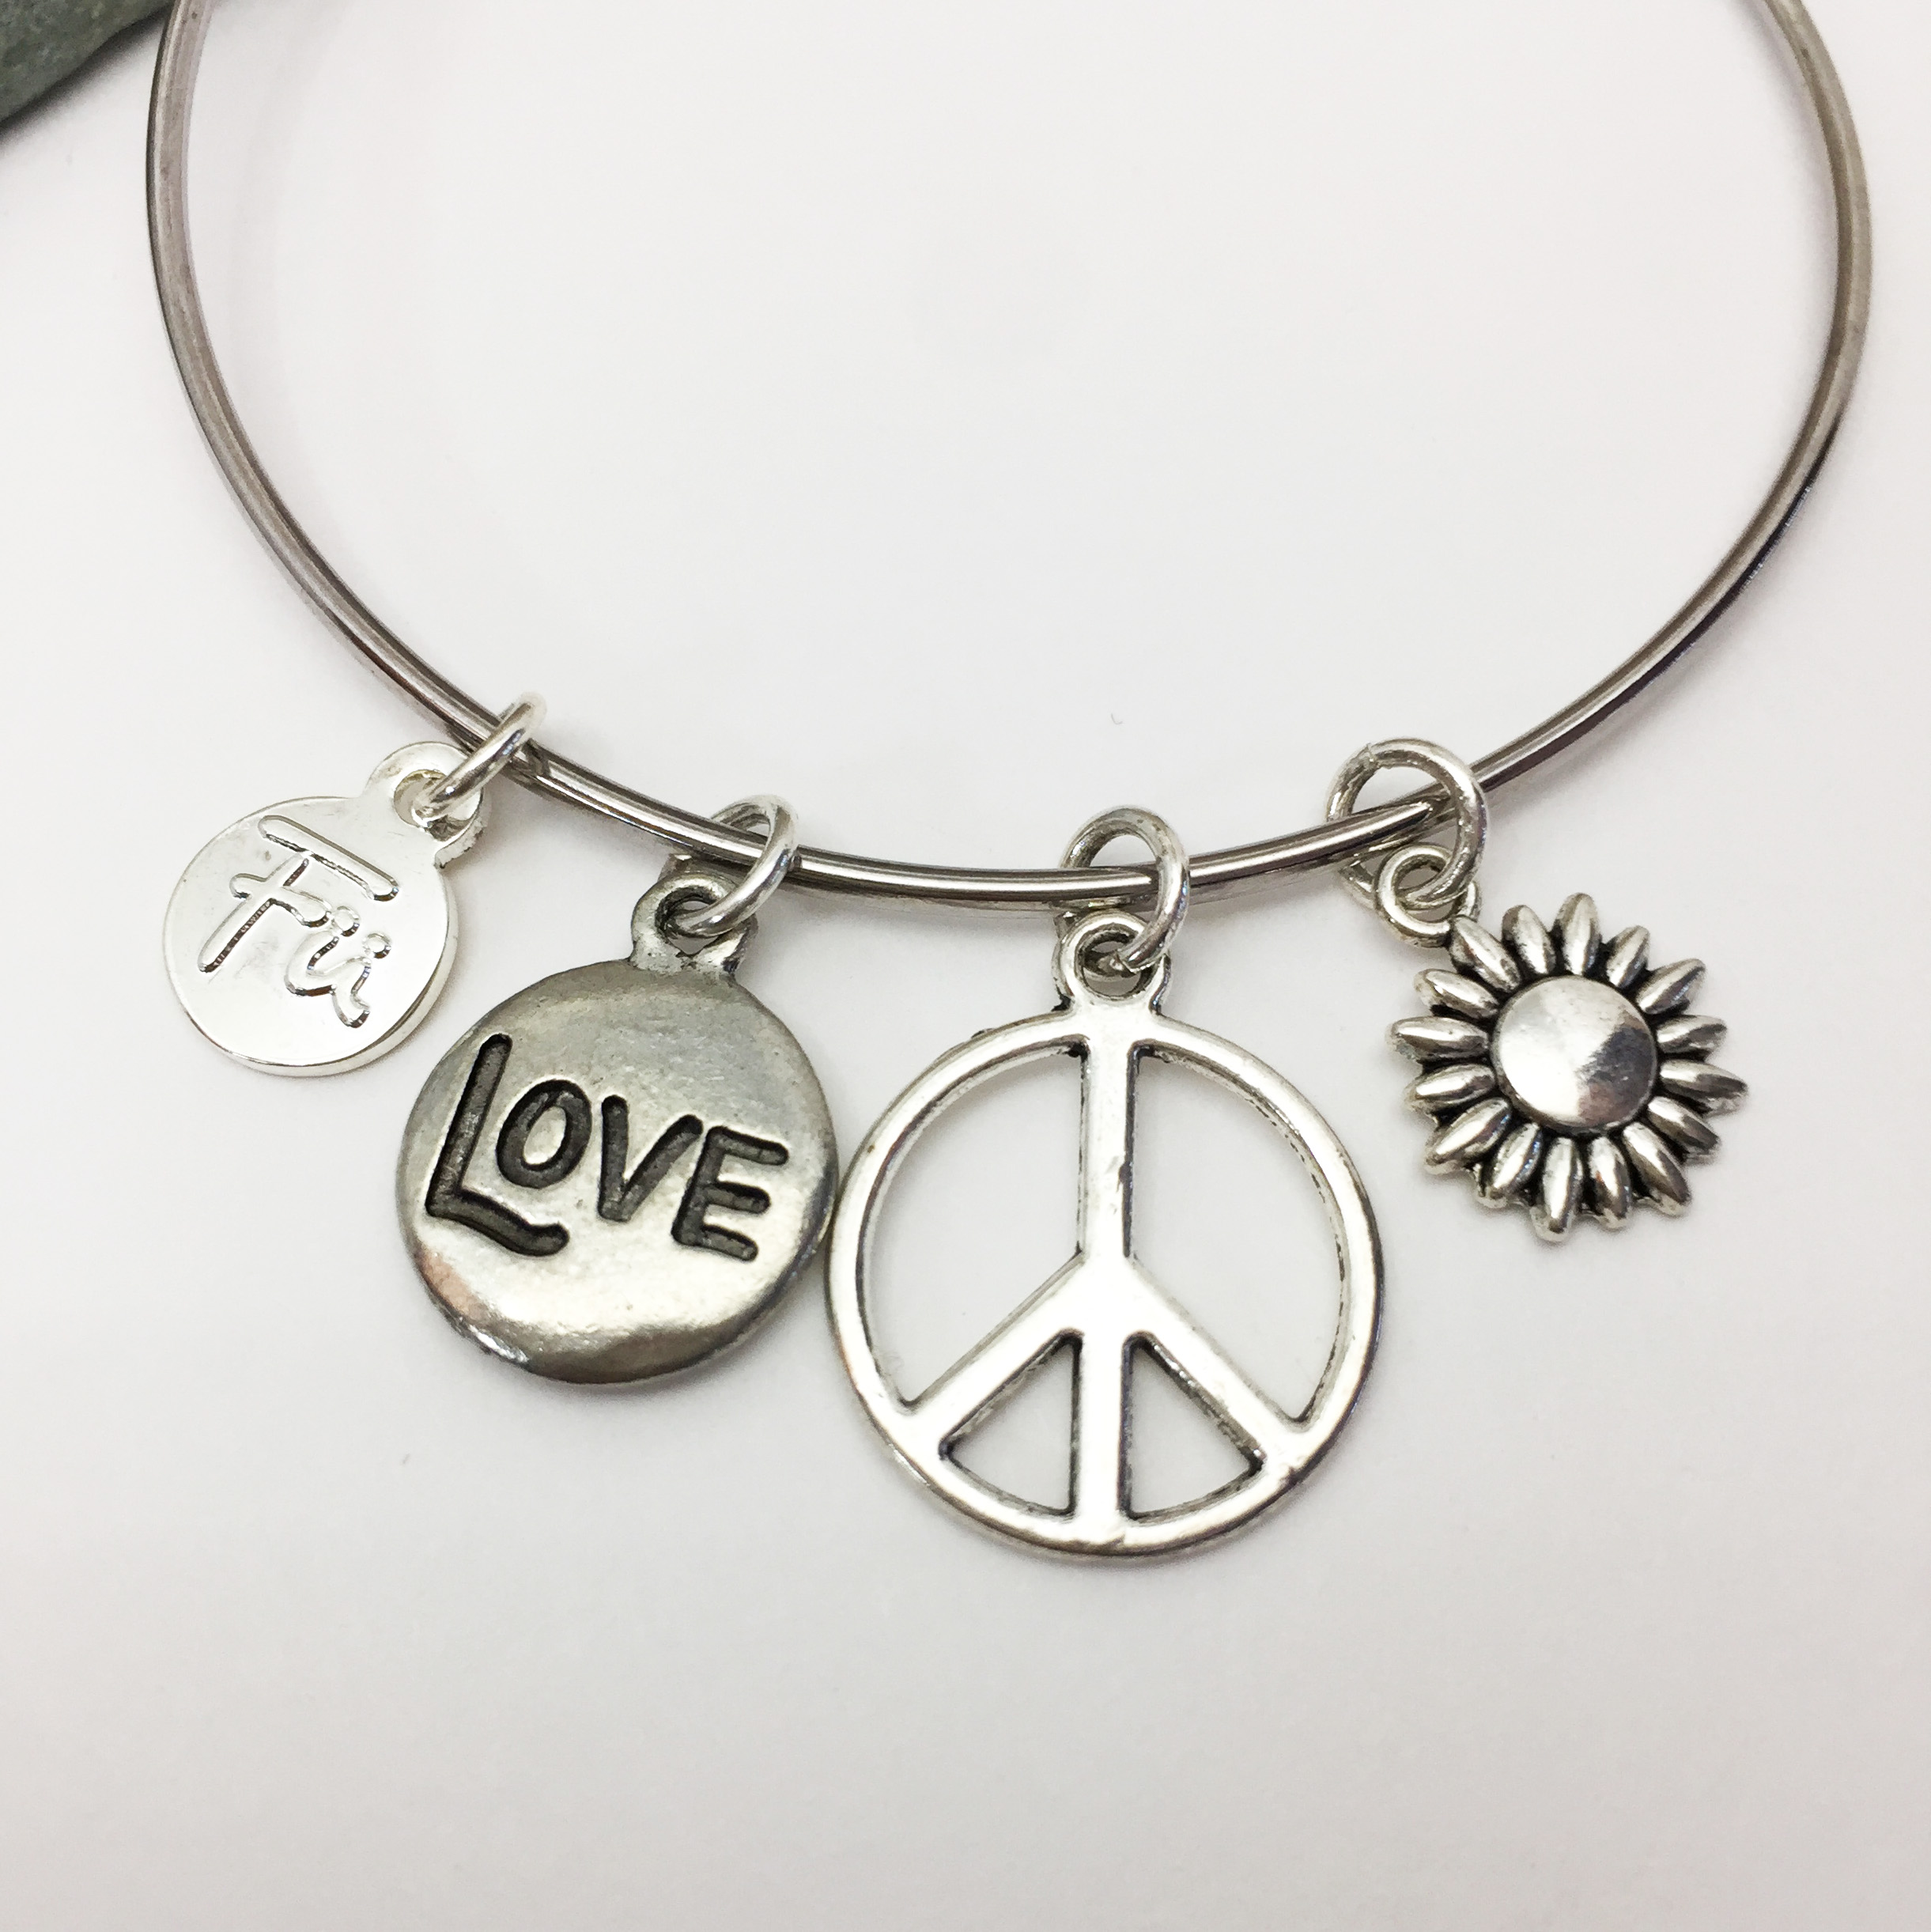 plain one sterling charms sign stretch handcrafted is peace heart products charm zen fish star adorable and bracelets symbol cute feather accessory silver pb stylish details bracelet this a fashion